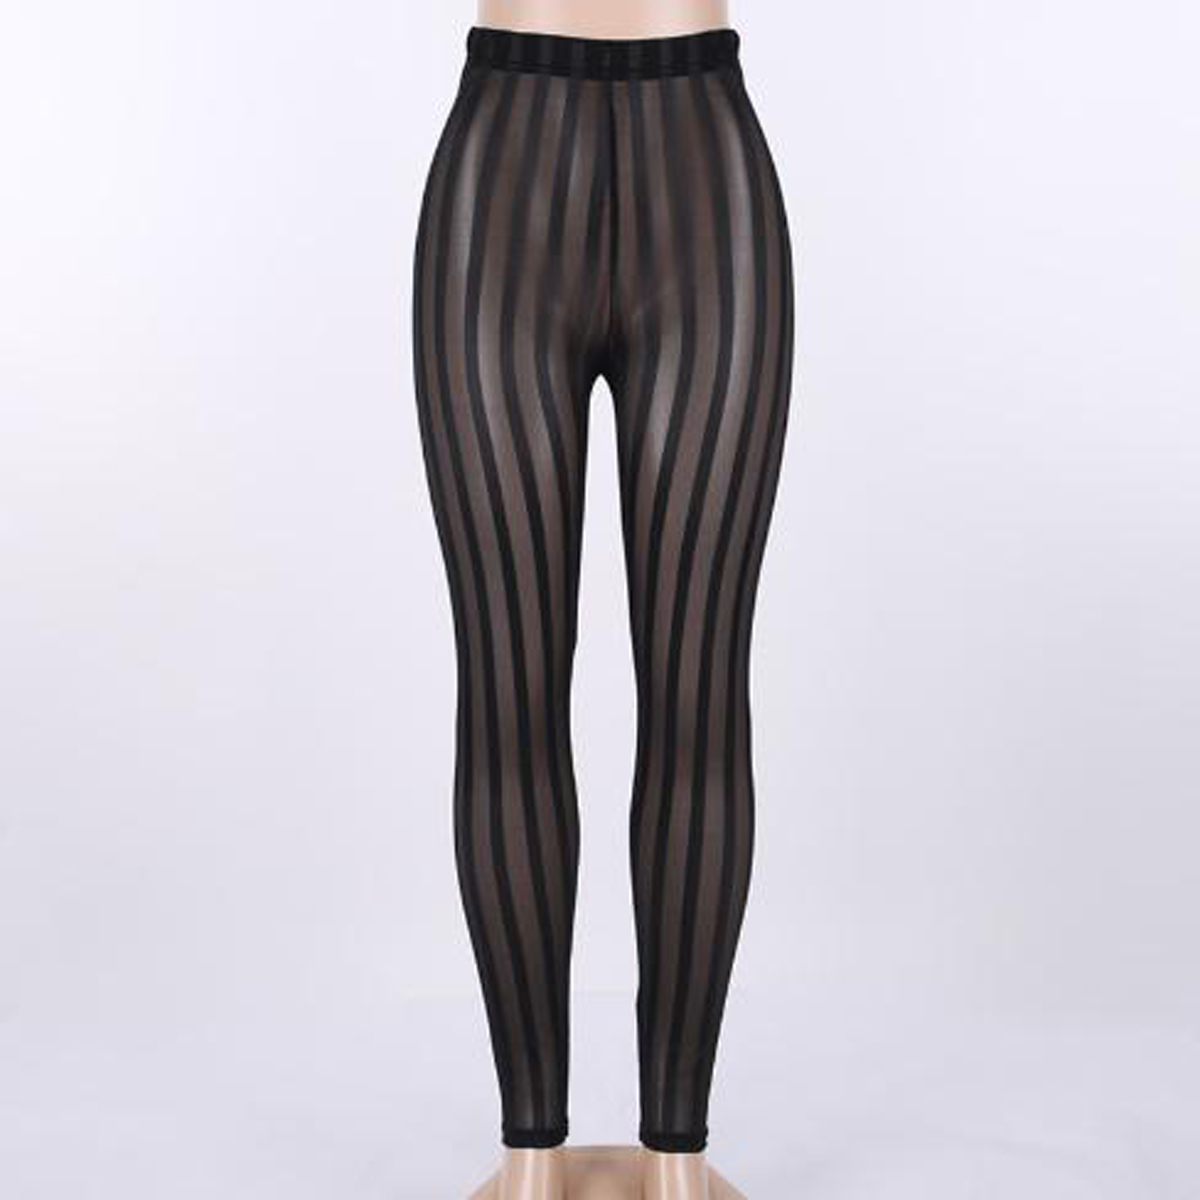 Fashion Ladies Women's Mesh Striped Sexy See Through Leggings Casual Perspective Summer Pants Trousers